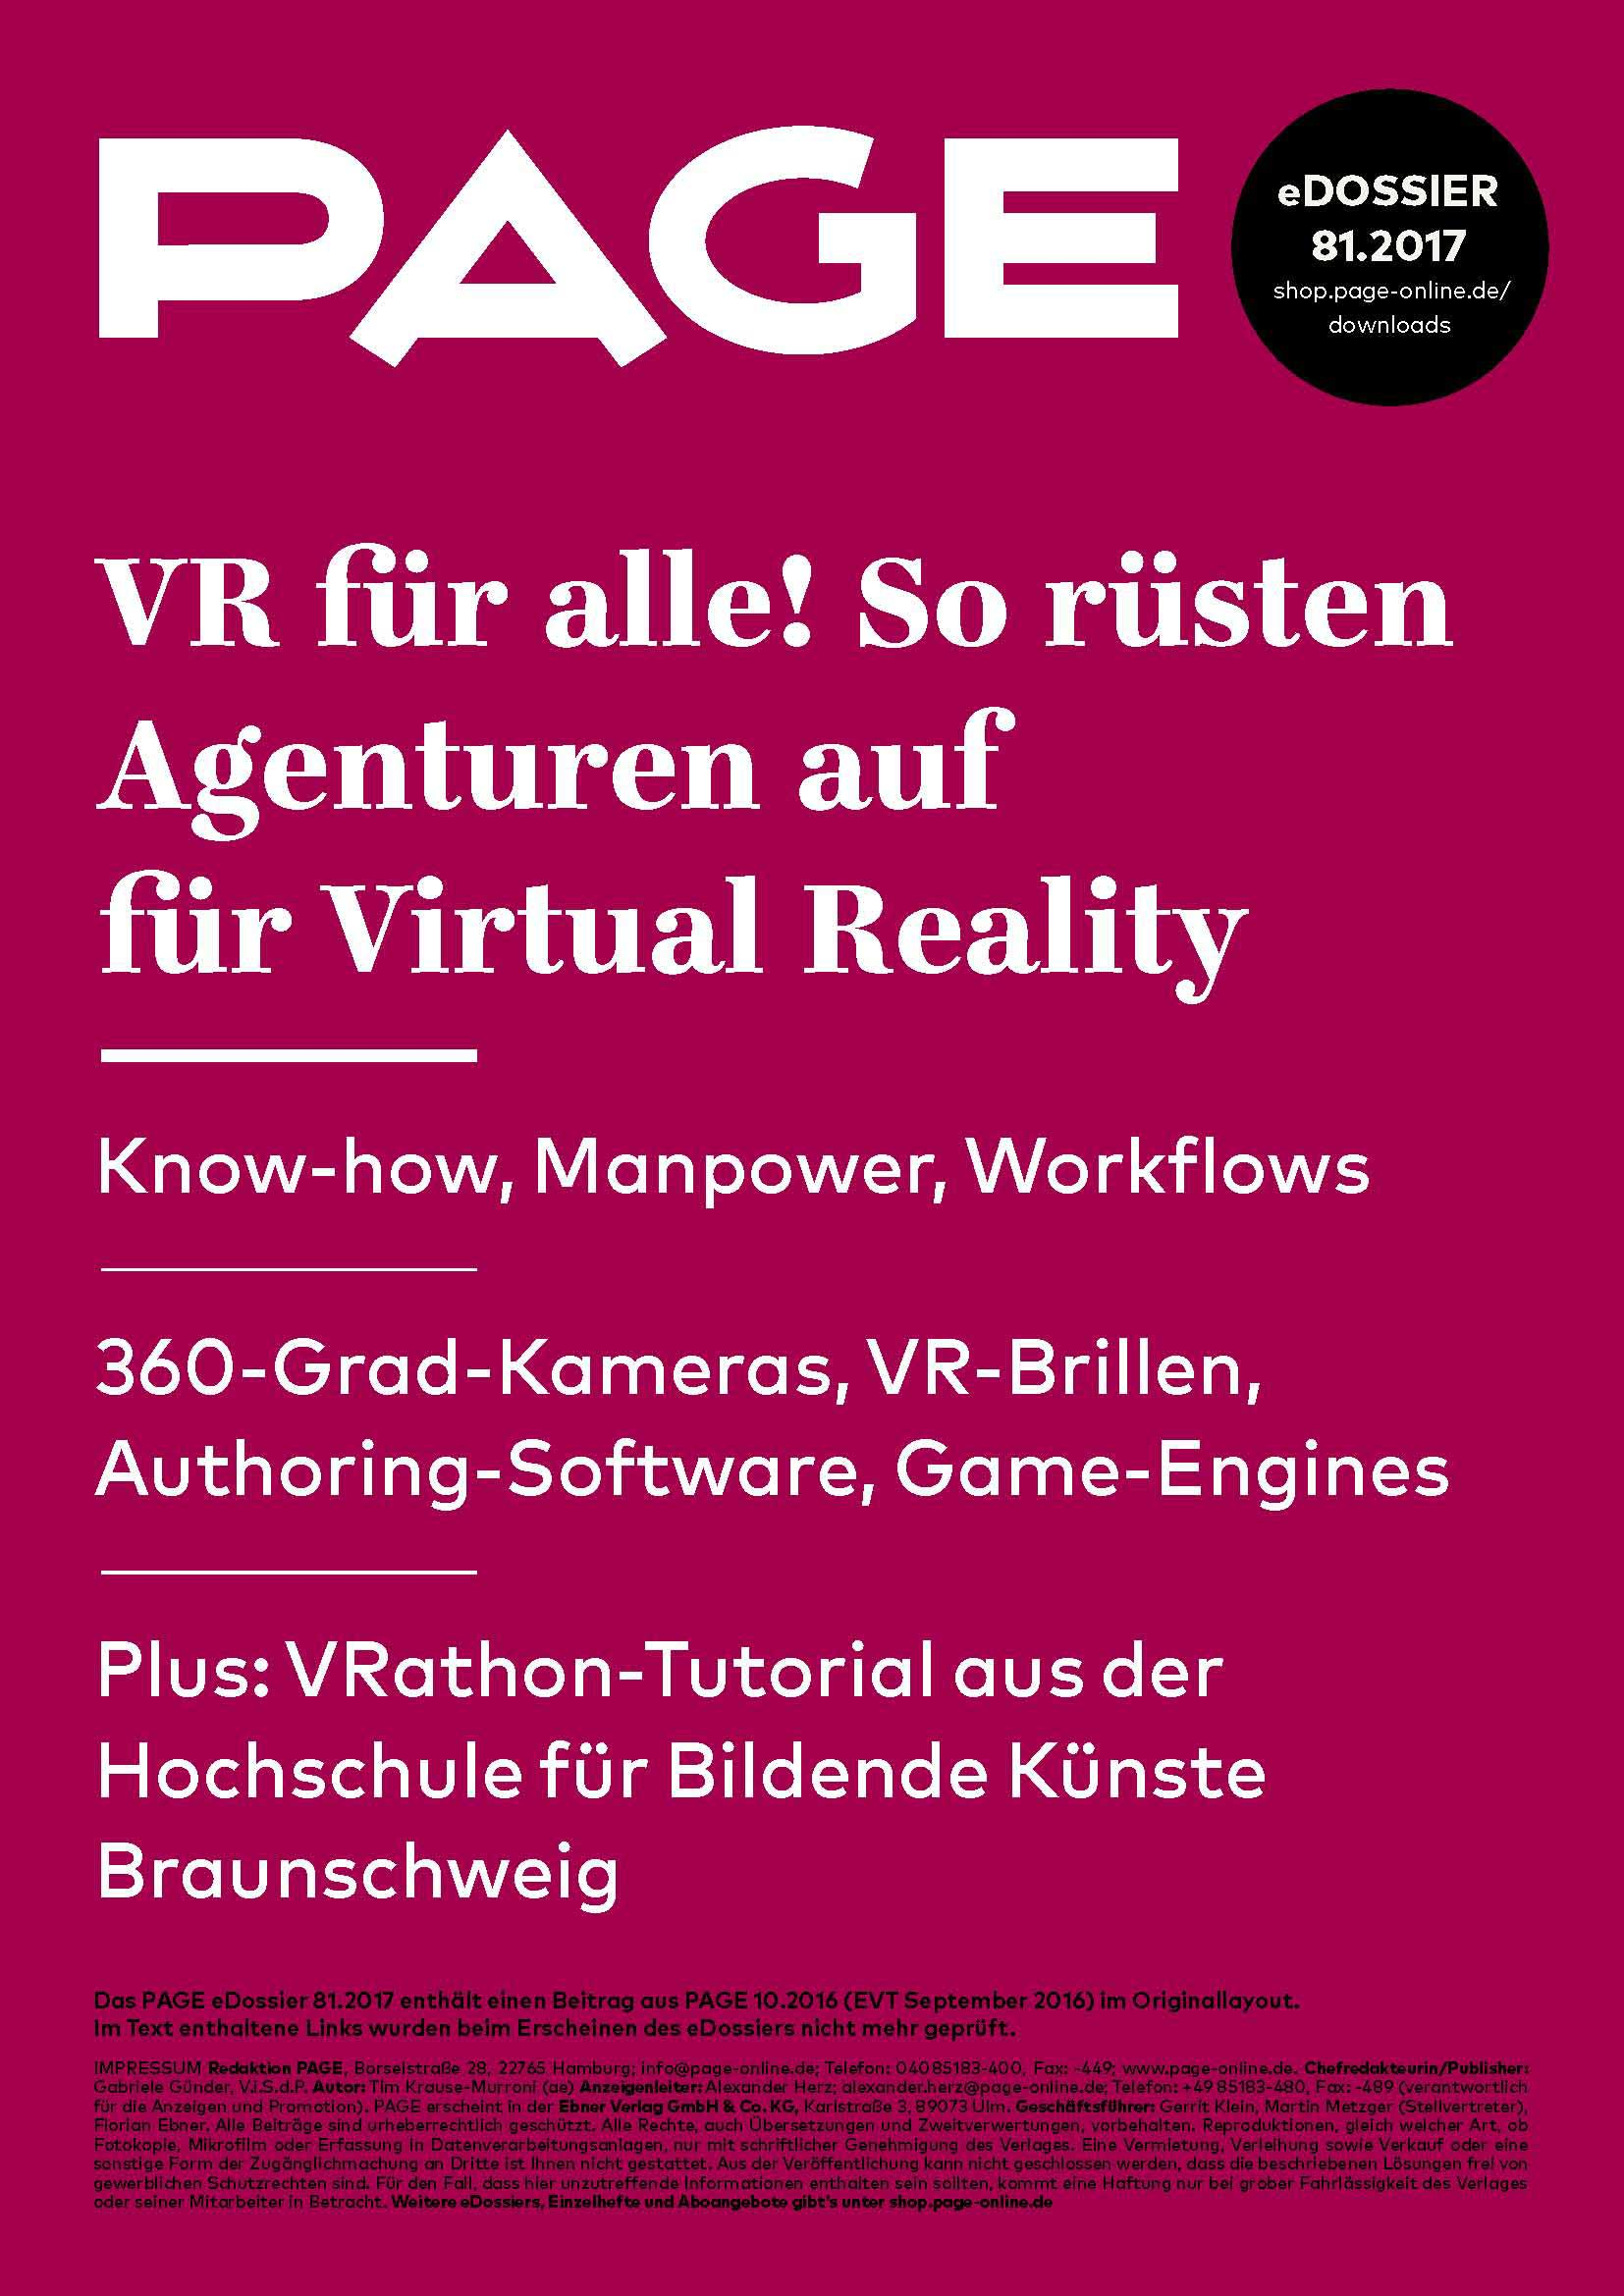 Virtual Reality, Virtual-Reality-Brille, VR-Brillen, Virtual-Reality-Apps, Unity Game Engine, 360-Grad-Kamera, Entwicklungsumgebung, Motion Sickness